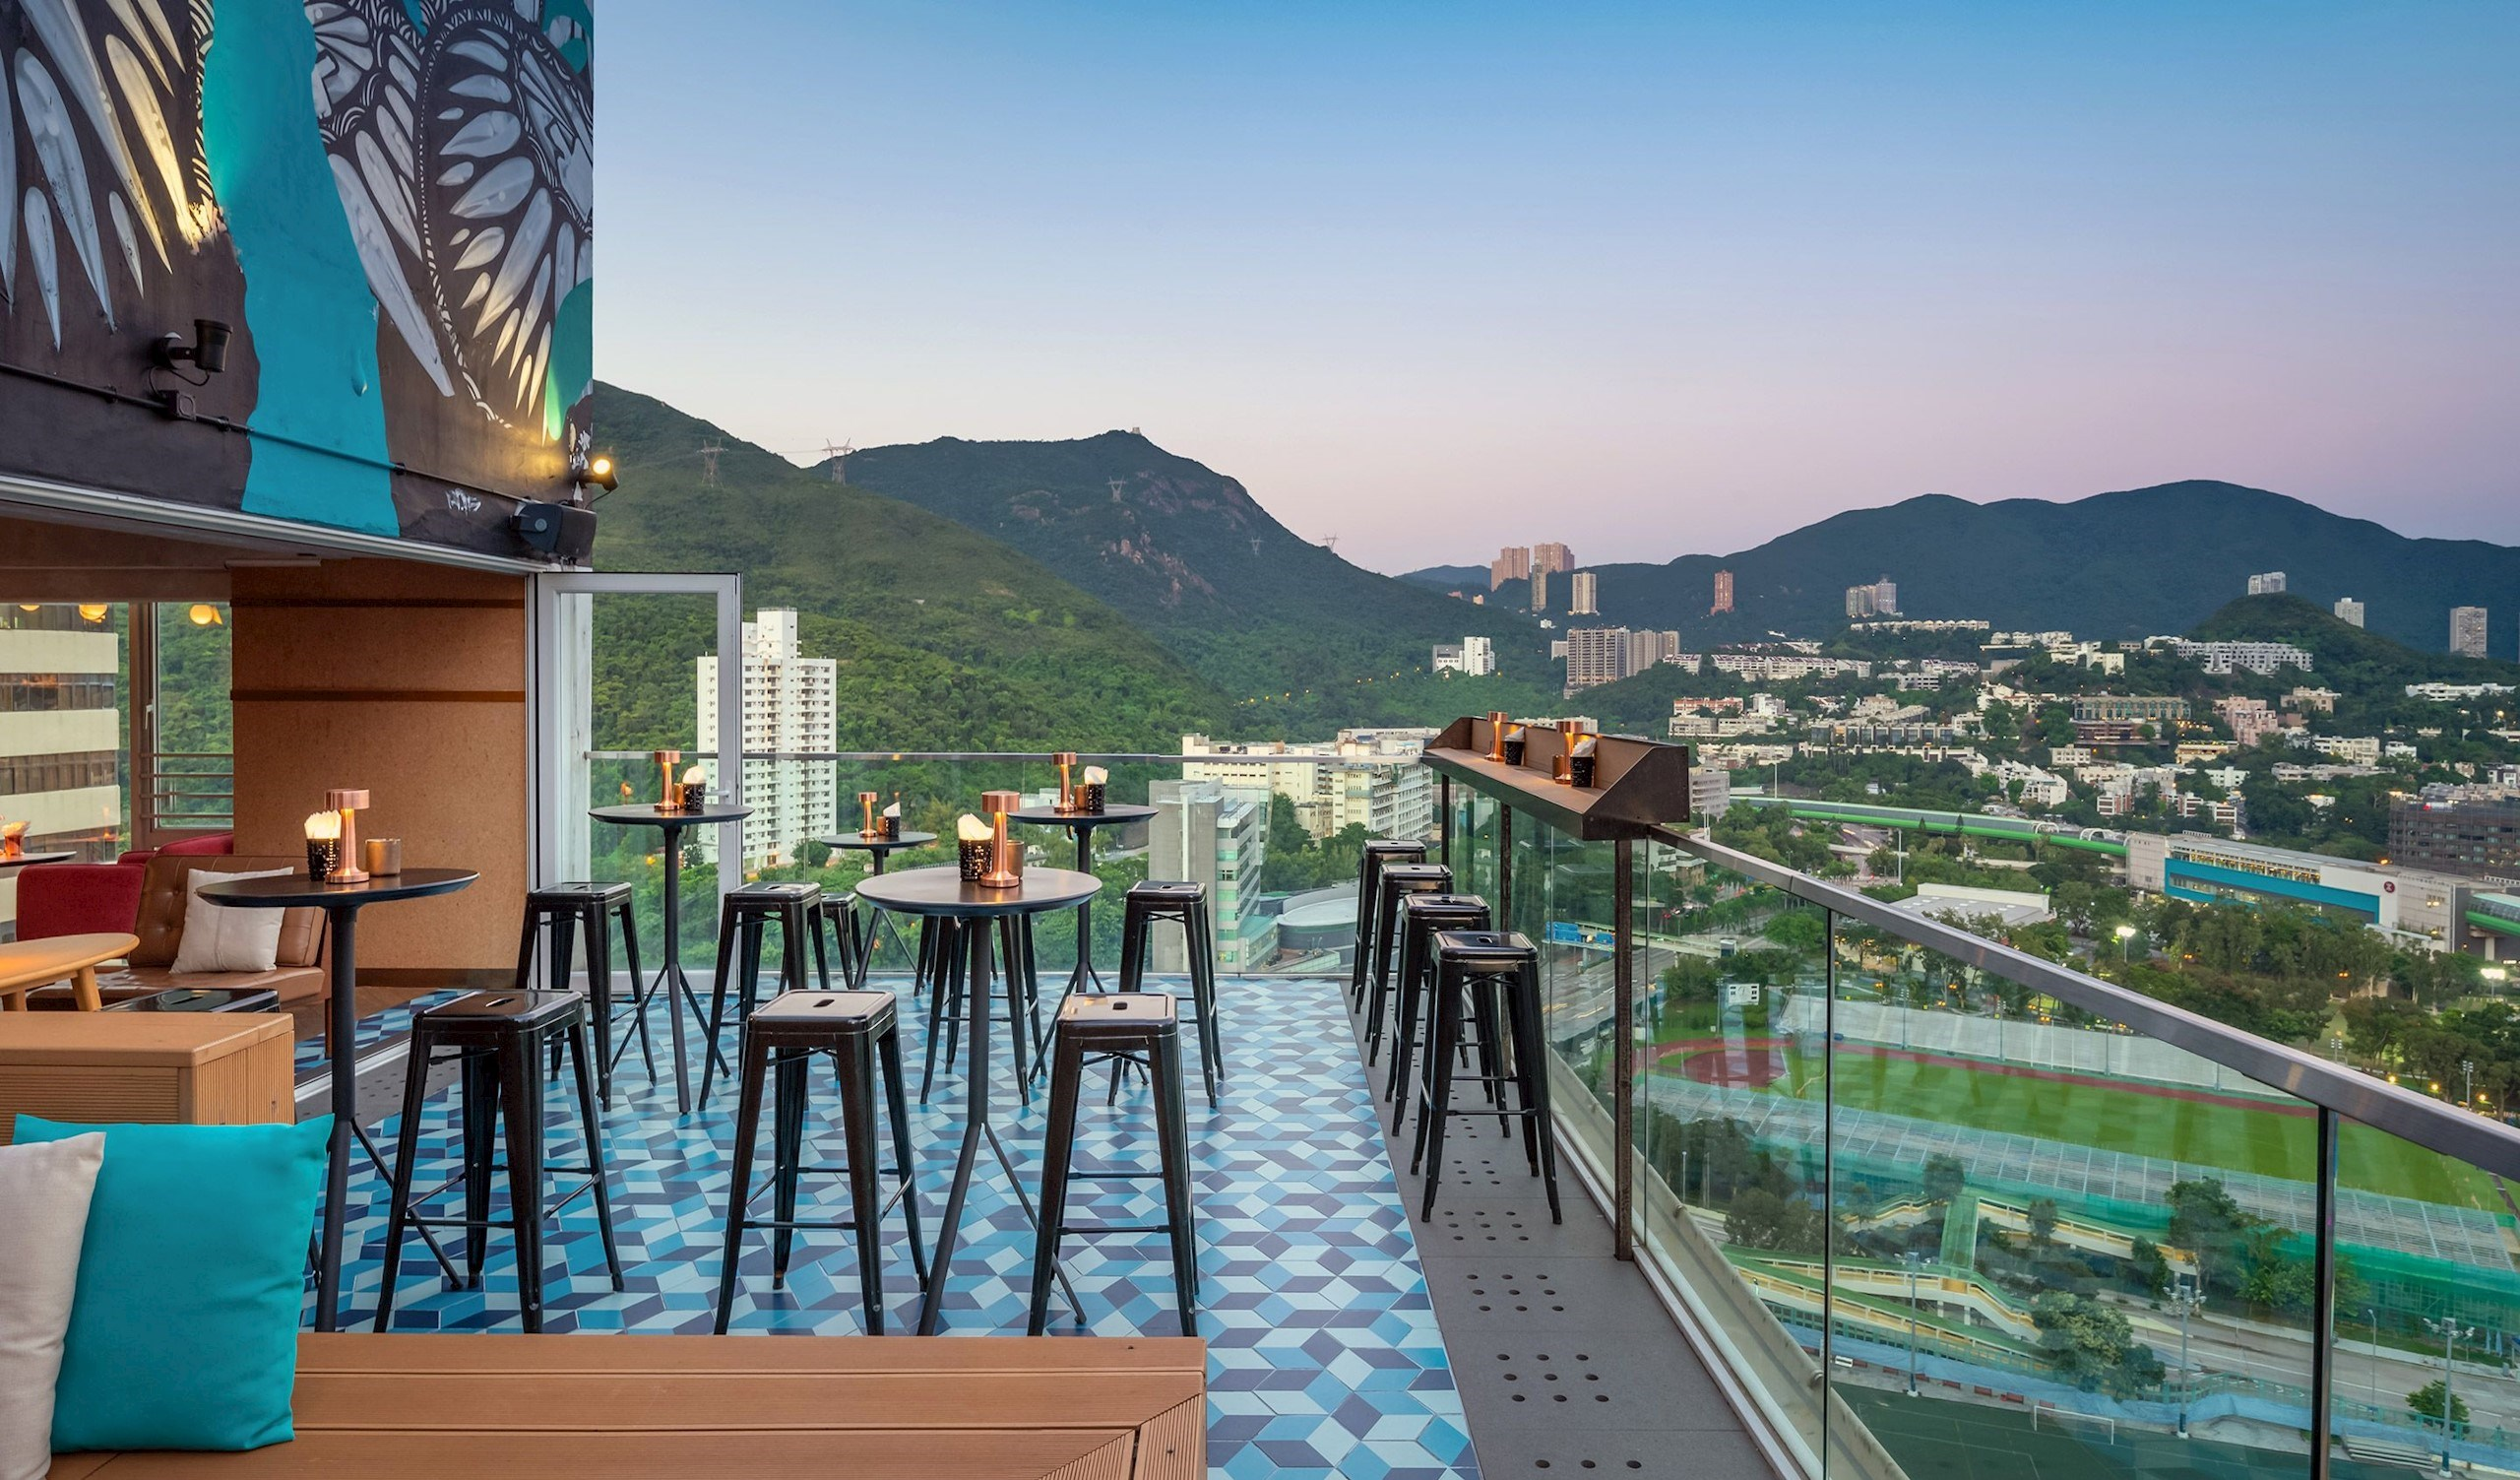 Ovolo Southside Design in Hong Kong